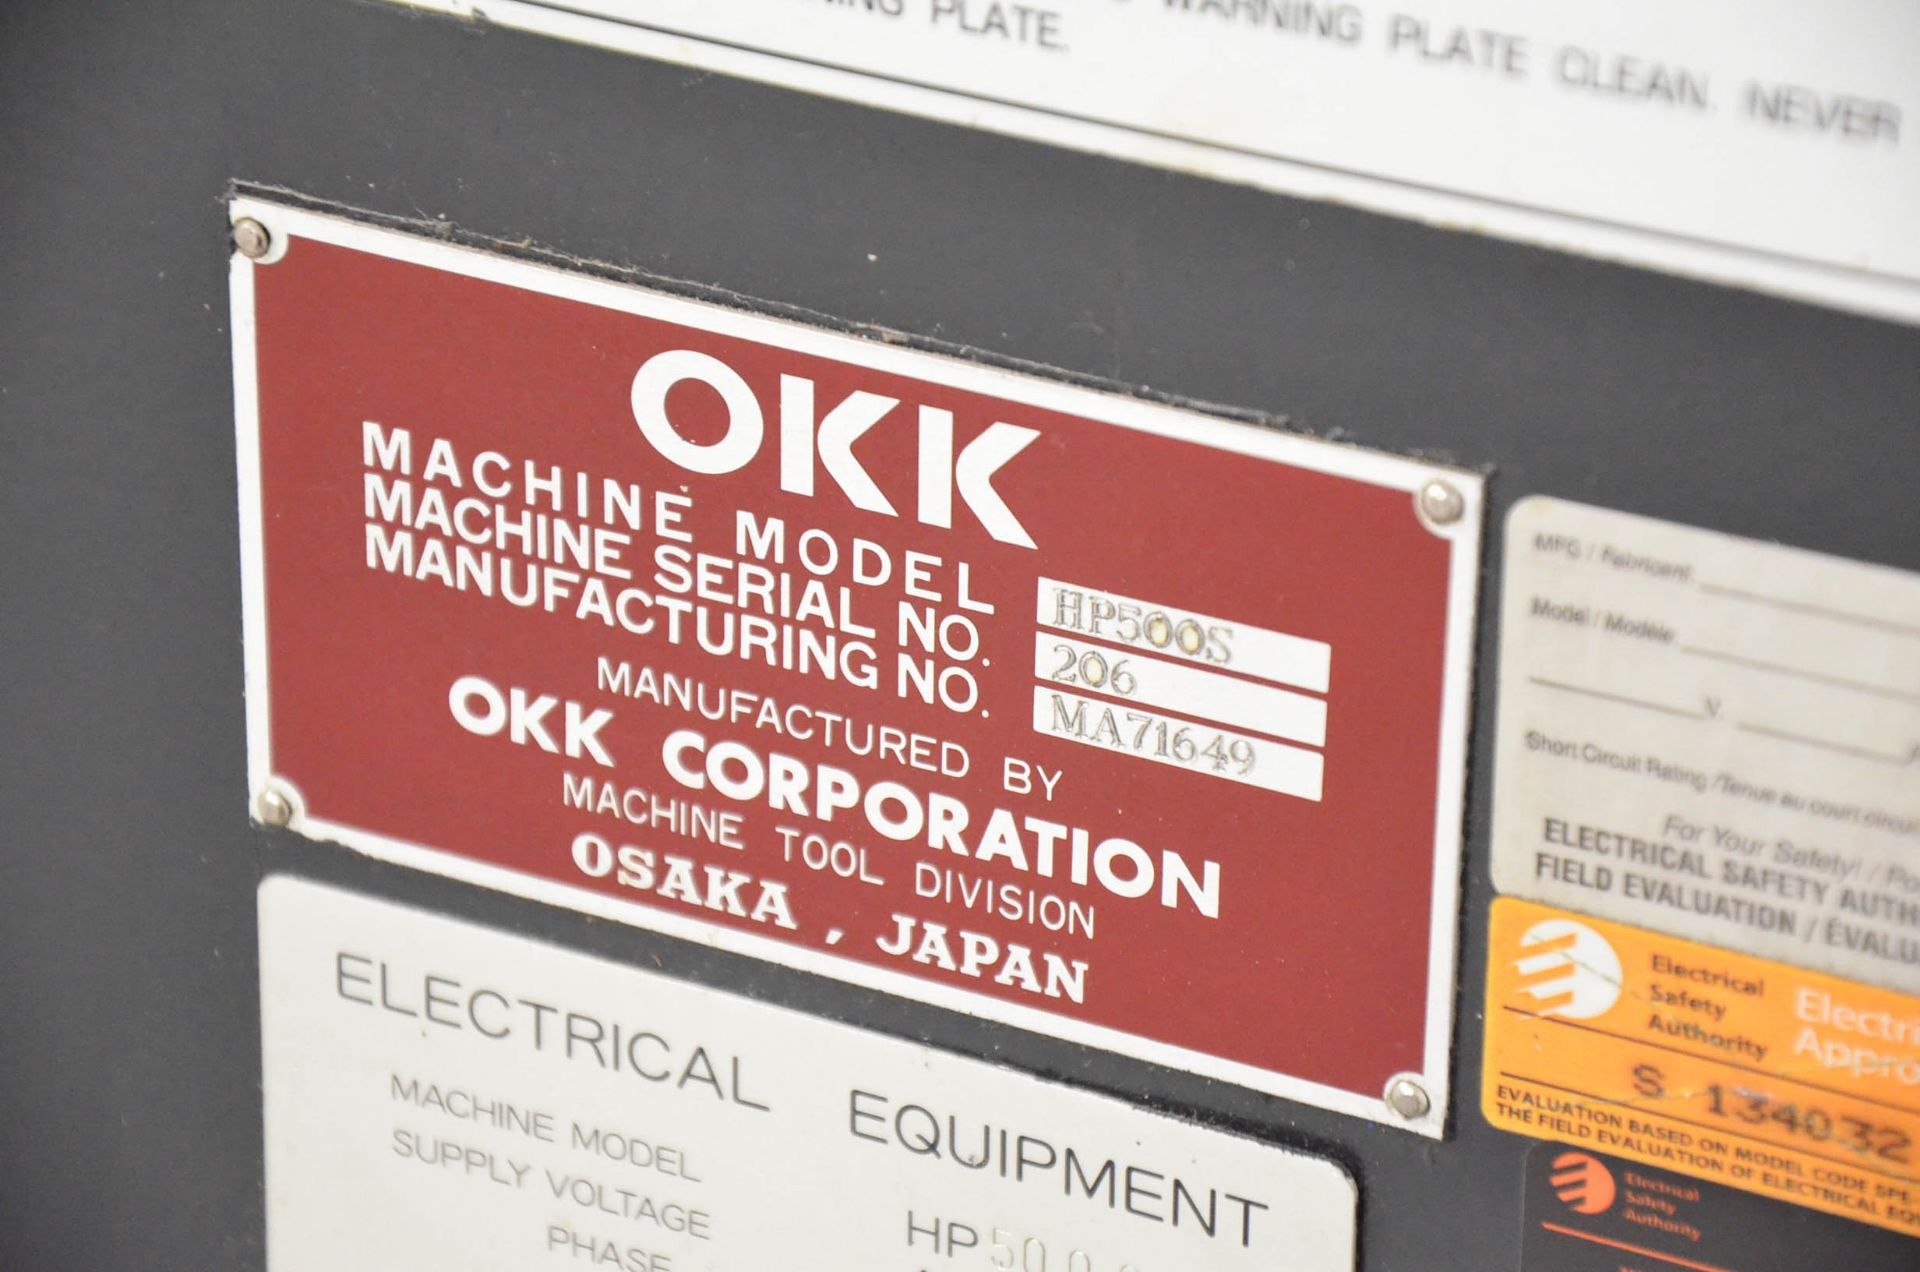 OKK (2006) HP500S TWIN-PALLET CNC HORIZONTAL MACHINING CENTER WITH FANUC 180I S-MB CNC CONTROL, 19. - Image 6 of 6